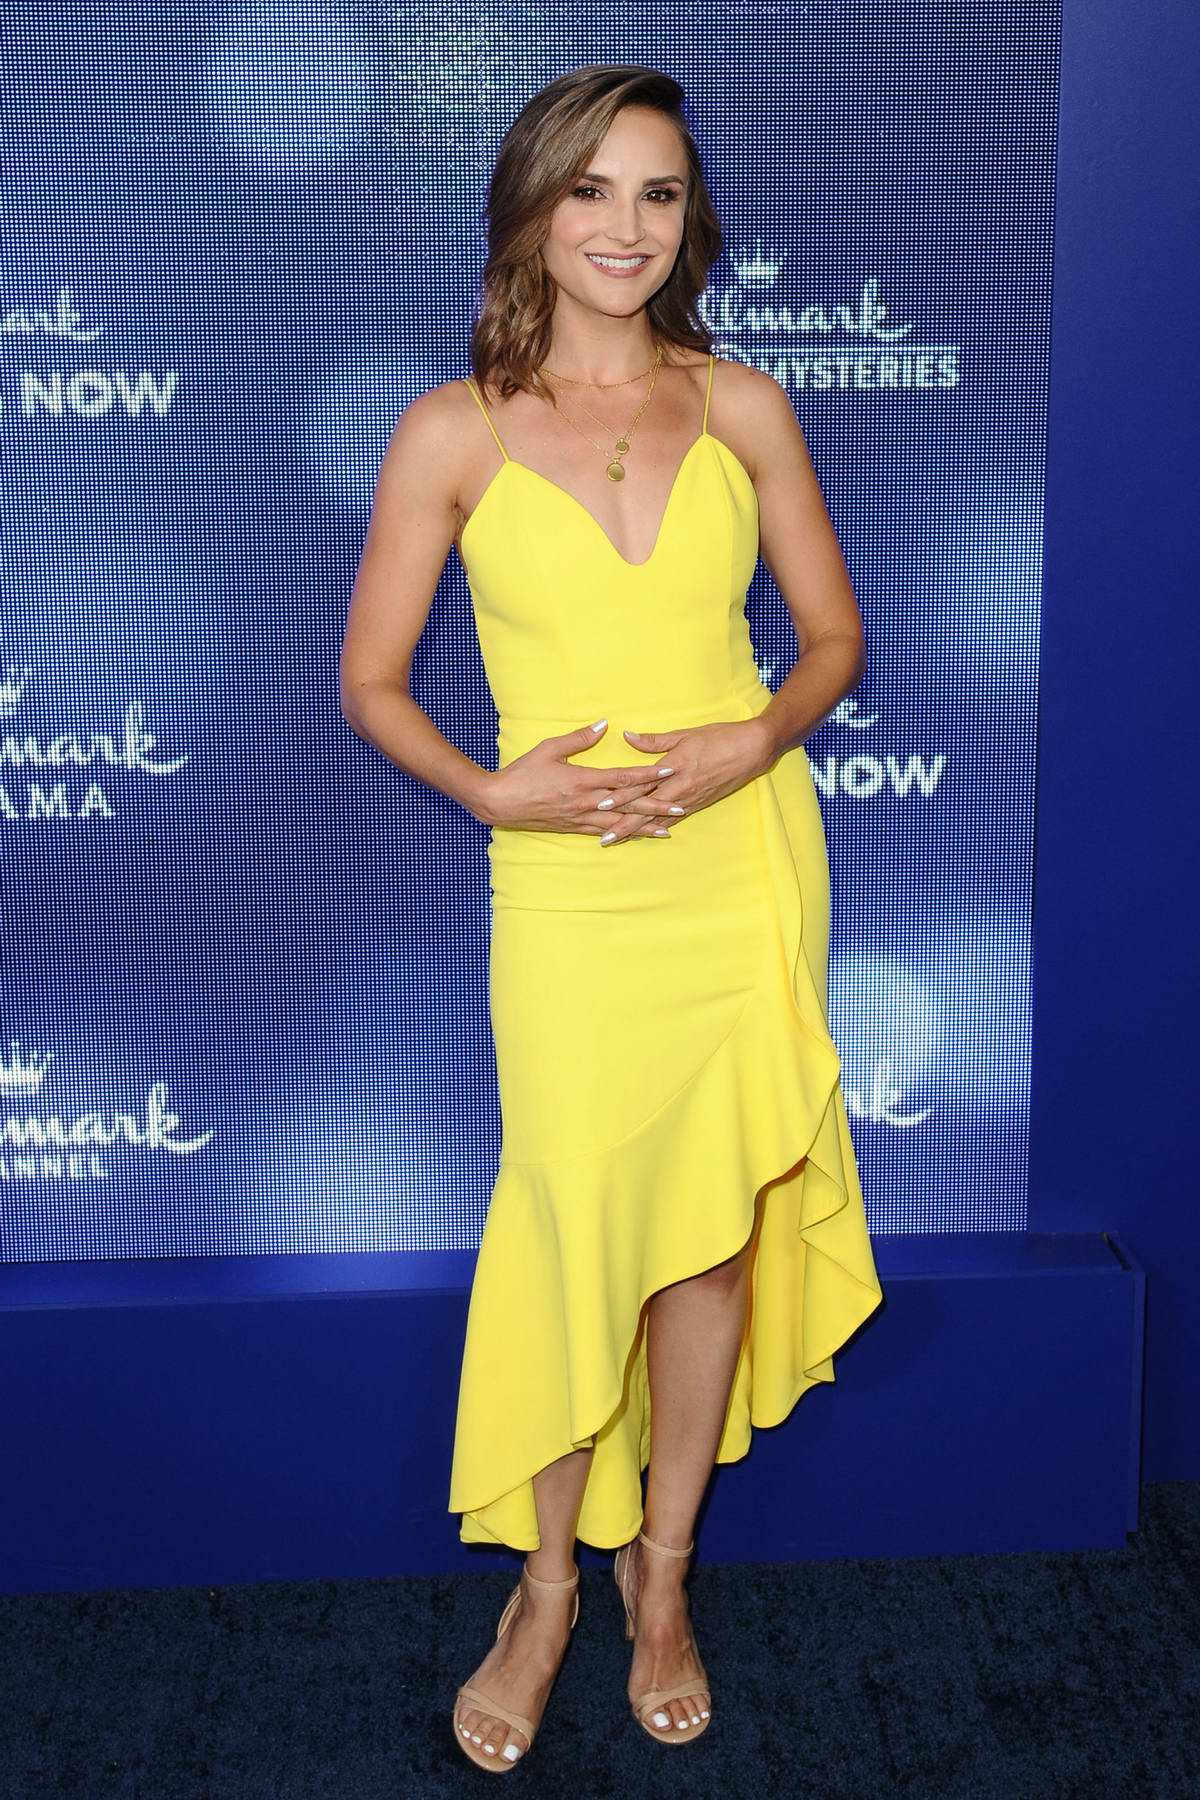 Rachael Leigh Cook attends Hallmark Movies & Mysteries Summer TCA Press Tour Event in Beverly Hills, Los Angeles